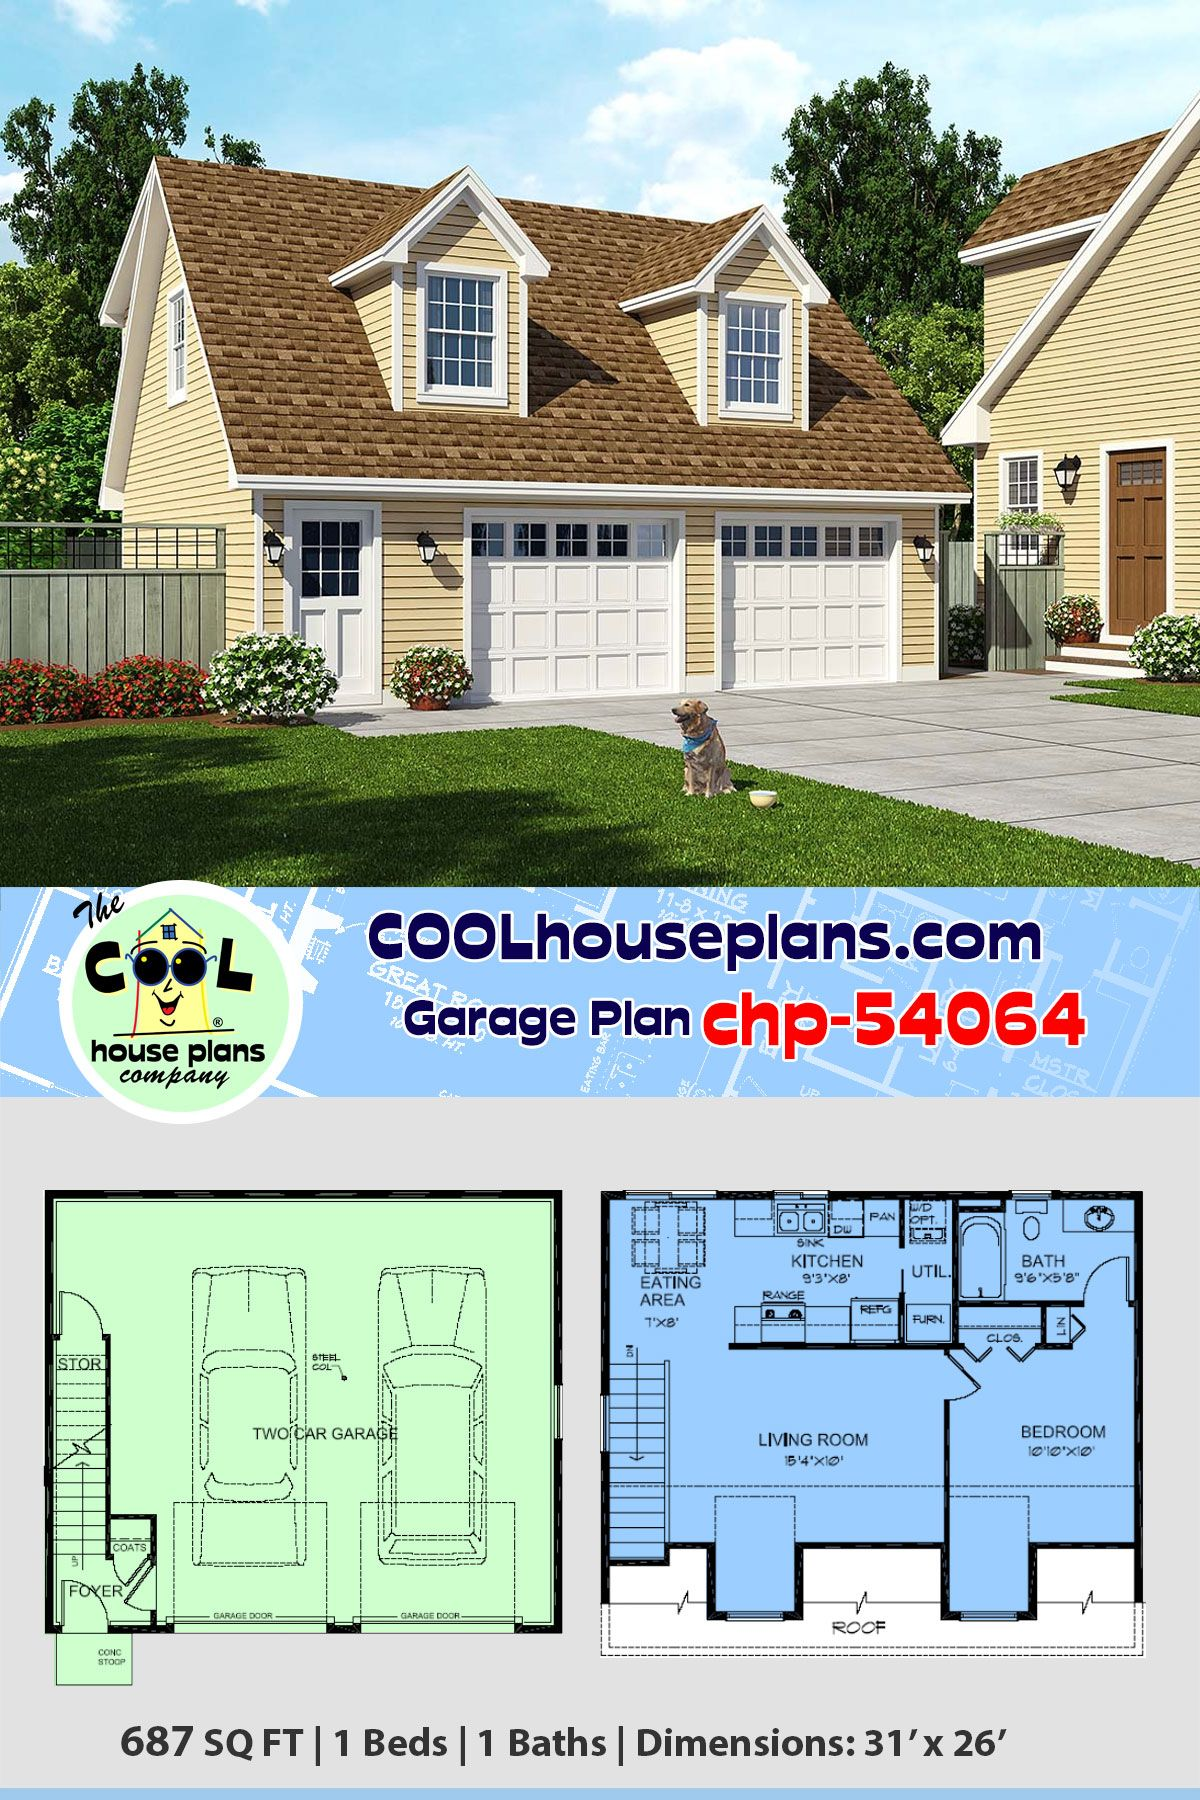 Two Car Garage Apartment Home Plan Chp 54064 Has 687 Sq Ft Of Living Space Above 1 Bedro In 2020 Carriage House Plans Garage Floor Plans Garage Apartment Floor Plans